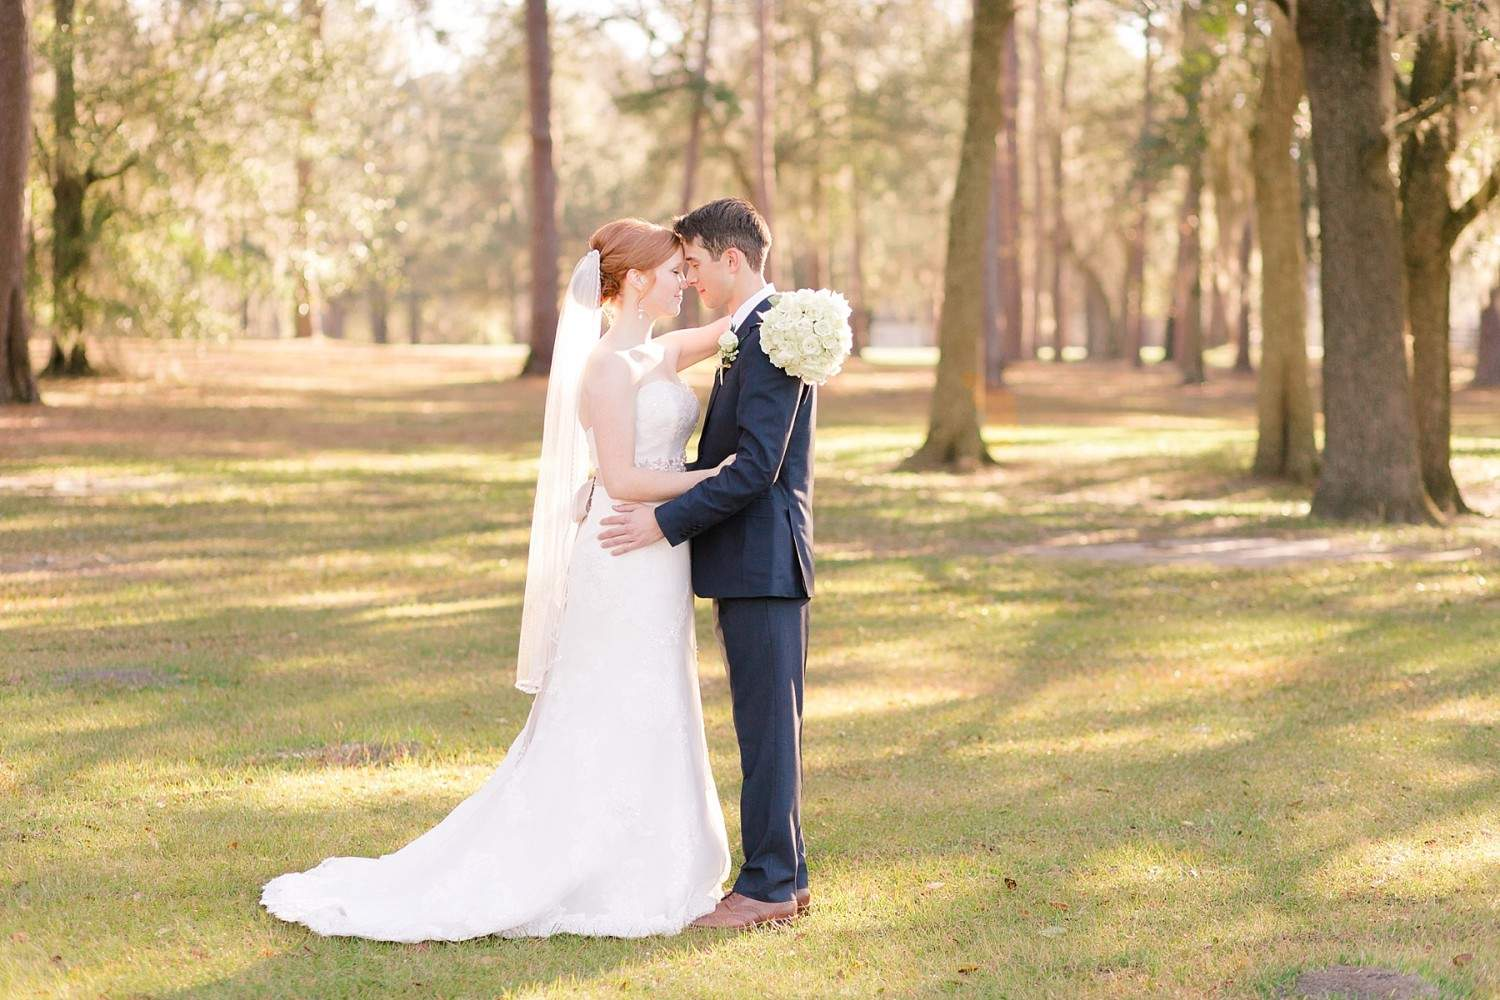 Tallahassee Wedding Photographer | Allison Nichole Photography